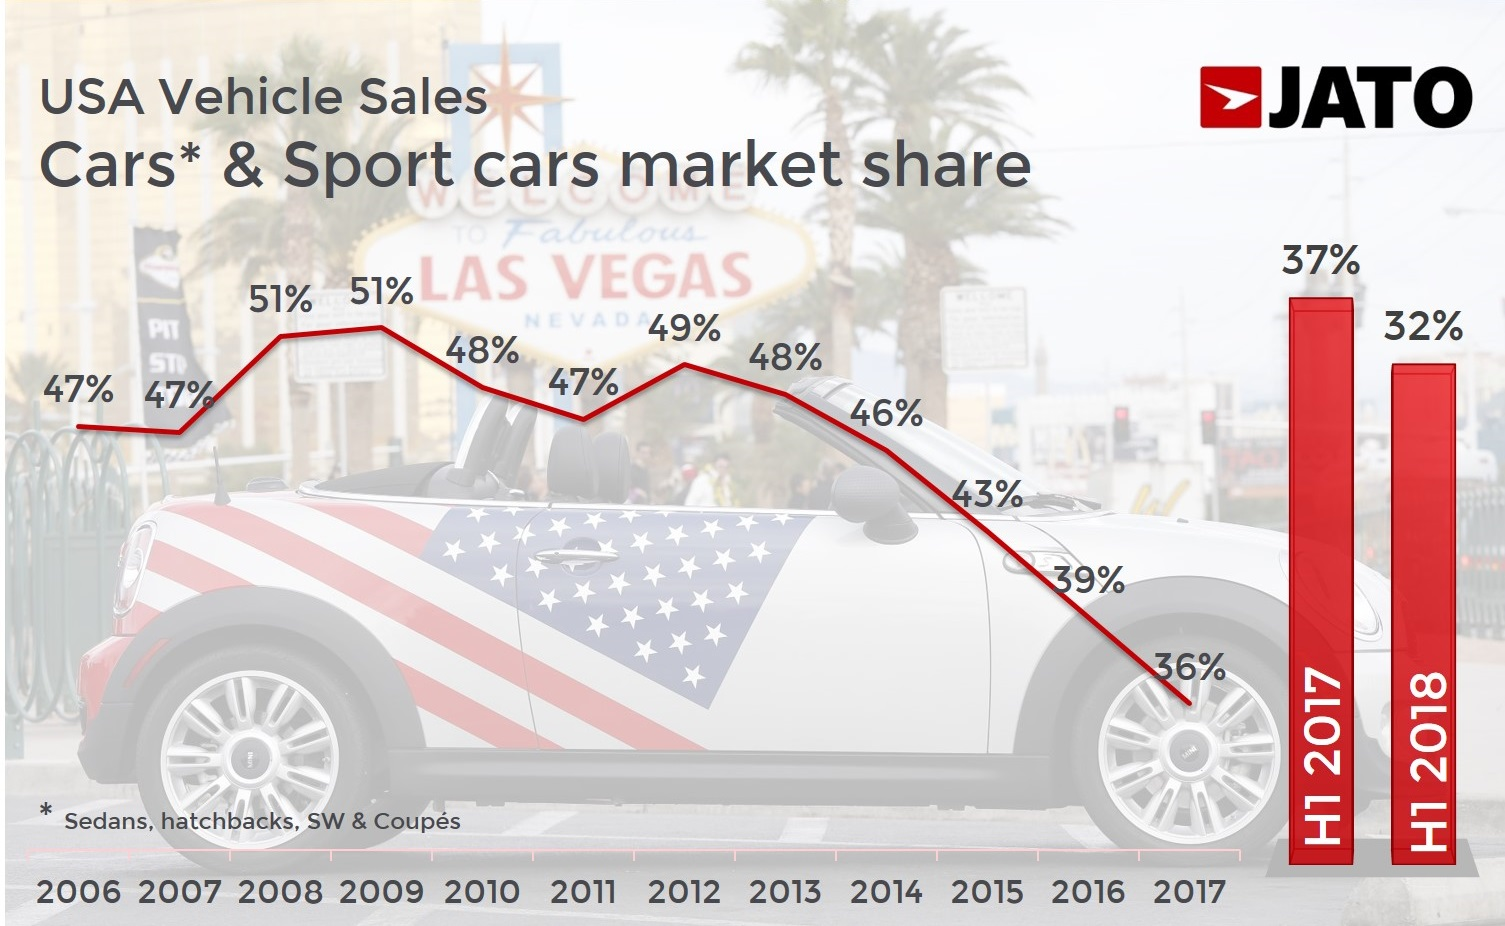 More Suvs More Trucks And Less Cars The Shift Continues In The Usa